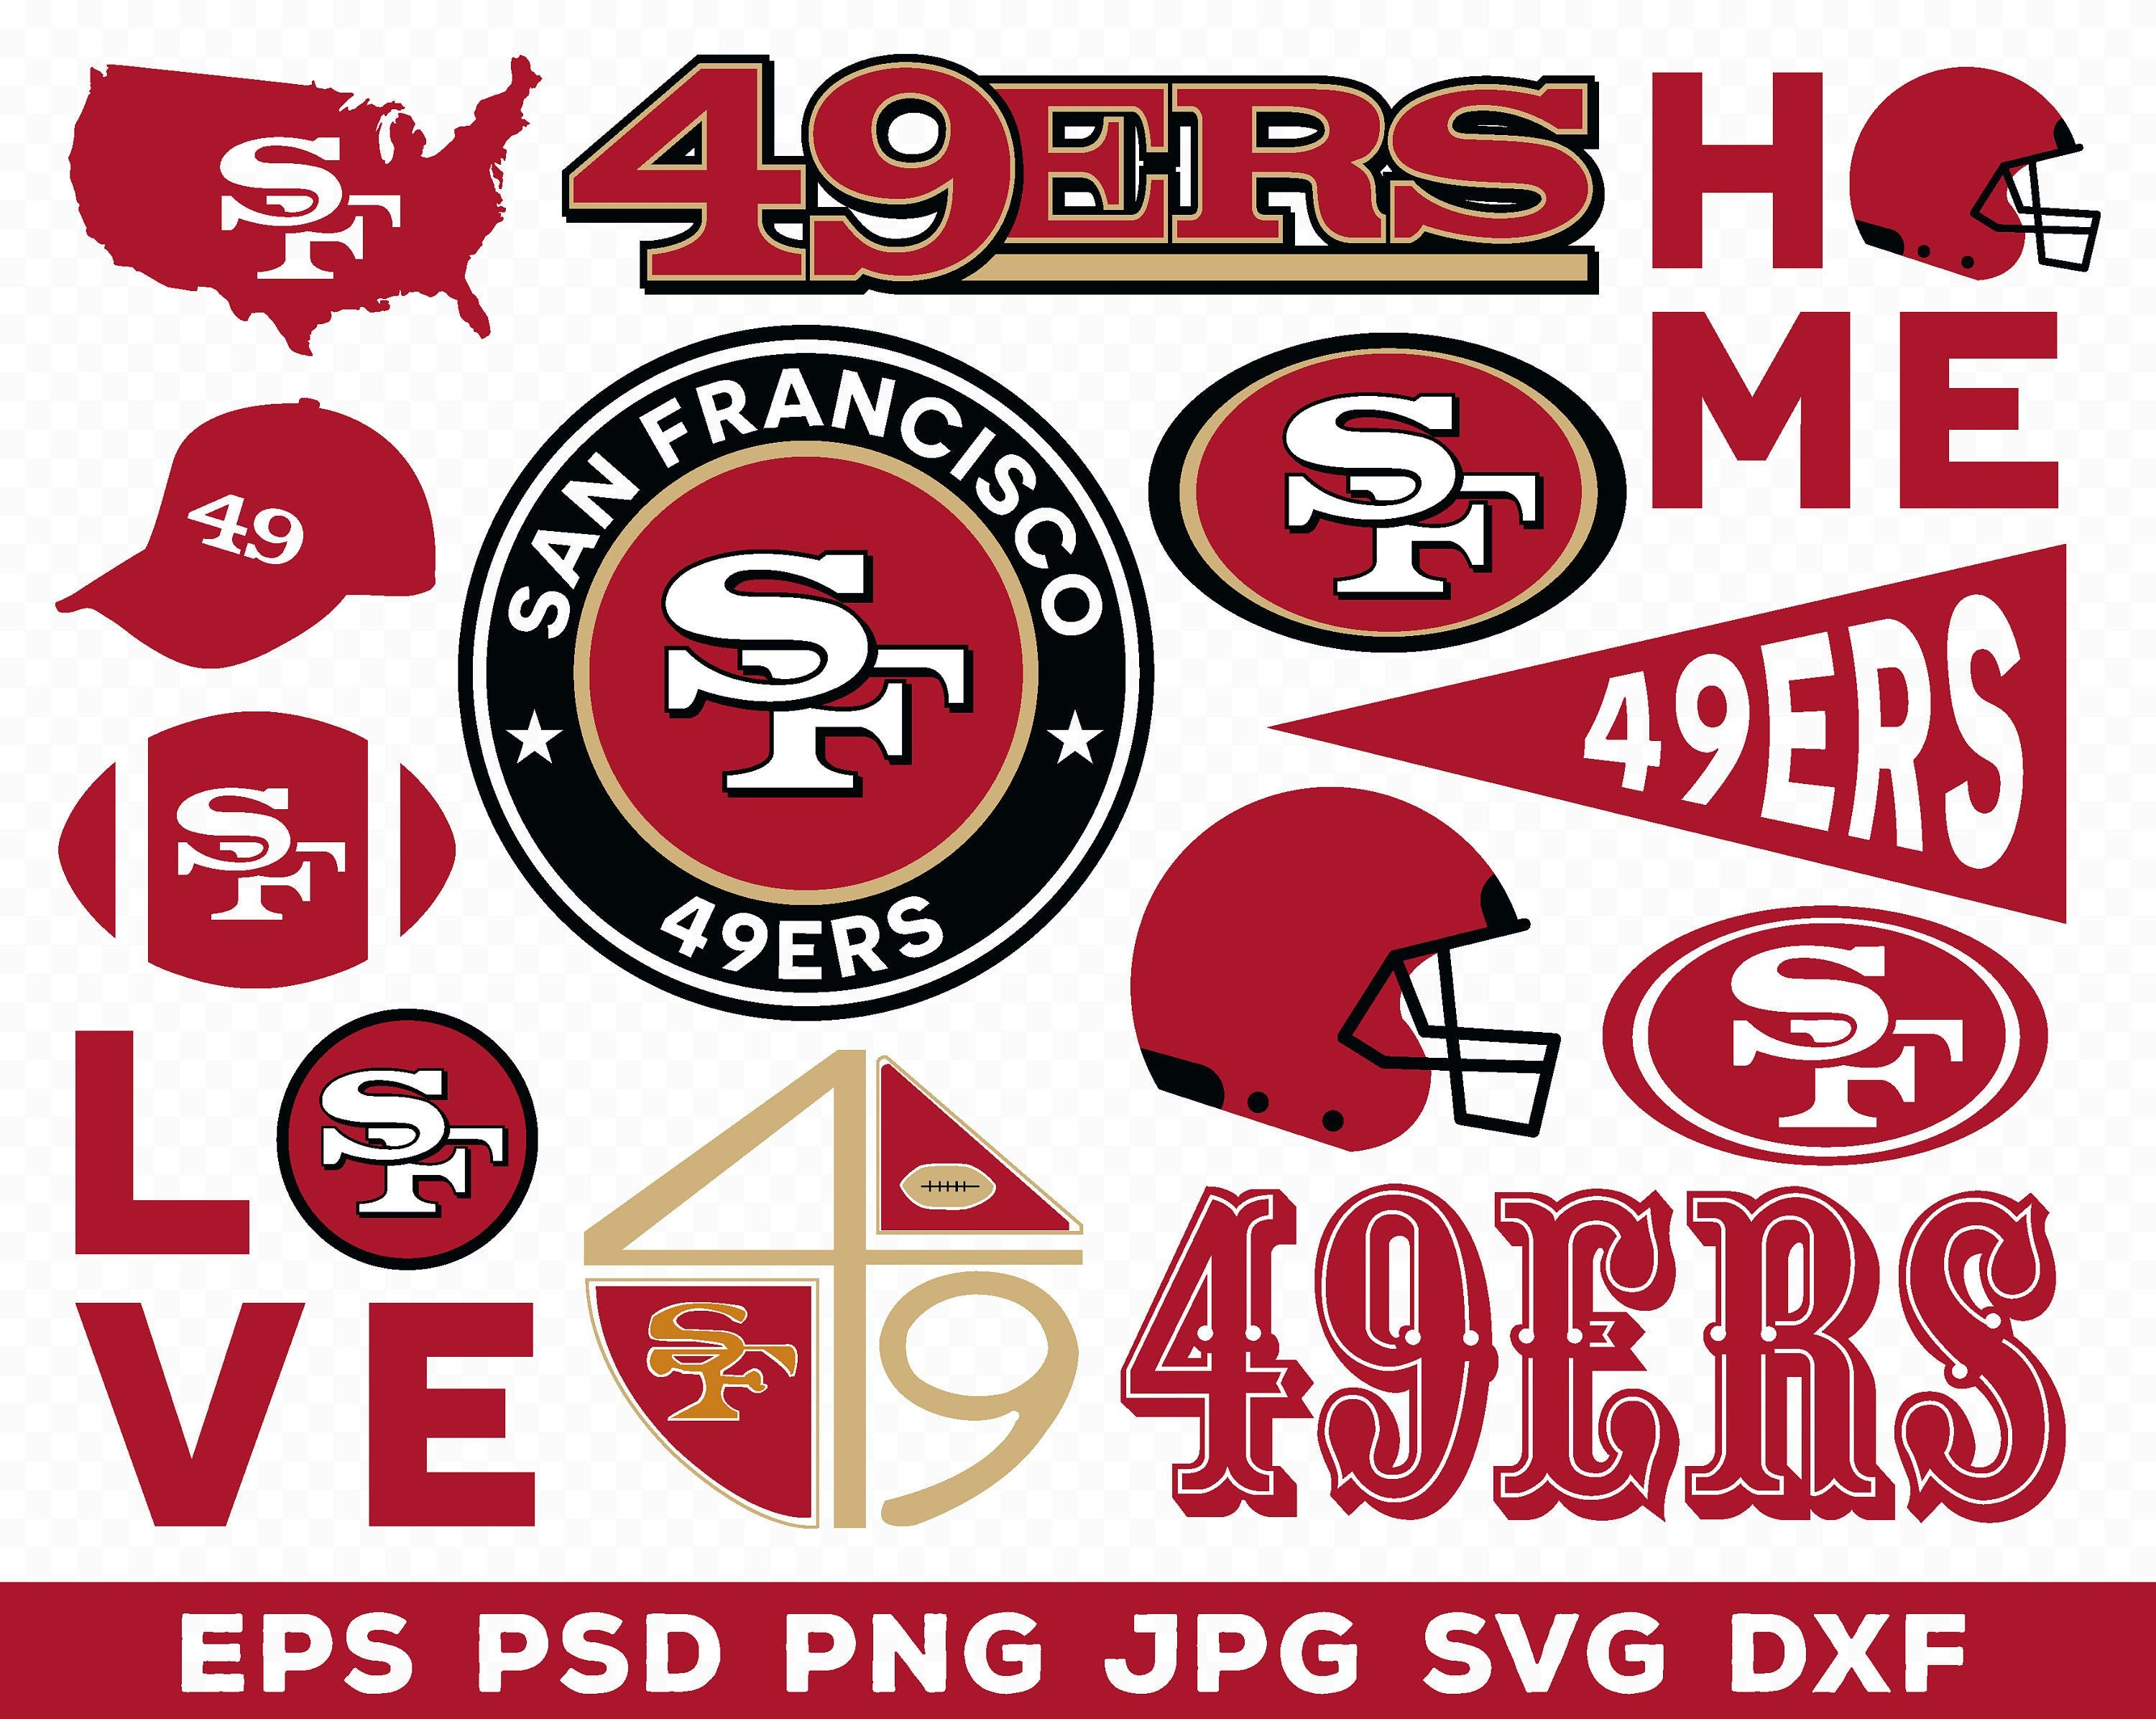 San Francisco 49ers San Francisco 49ers Logo San Francisco 49ers Svg San Francisco 49ers Clipart San Fra San Francisco 49ers Logo San Francisco 49ers 49ers